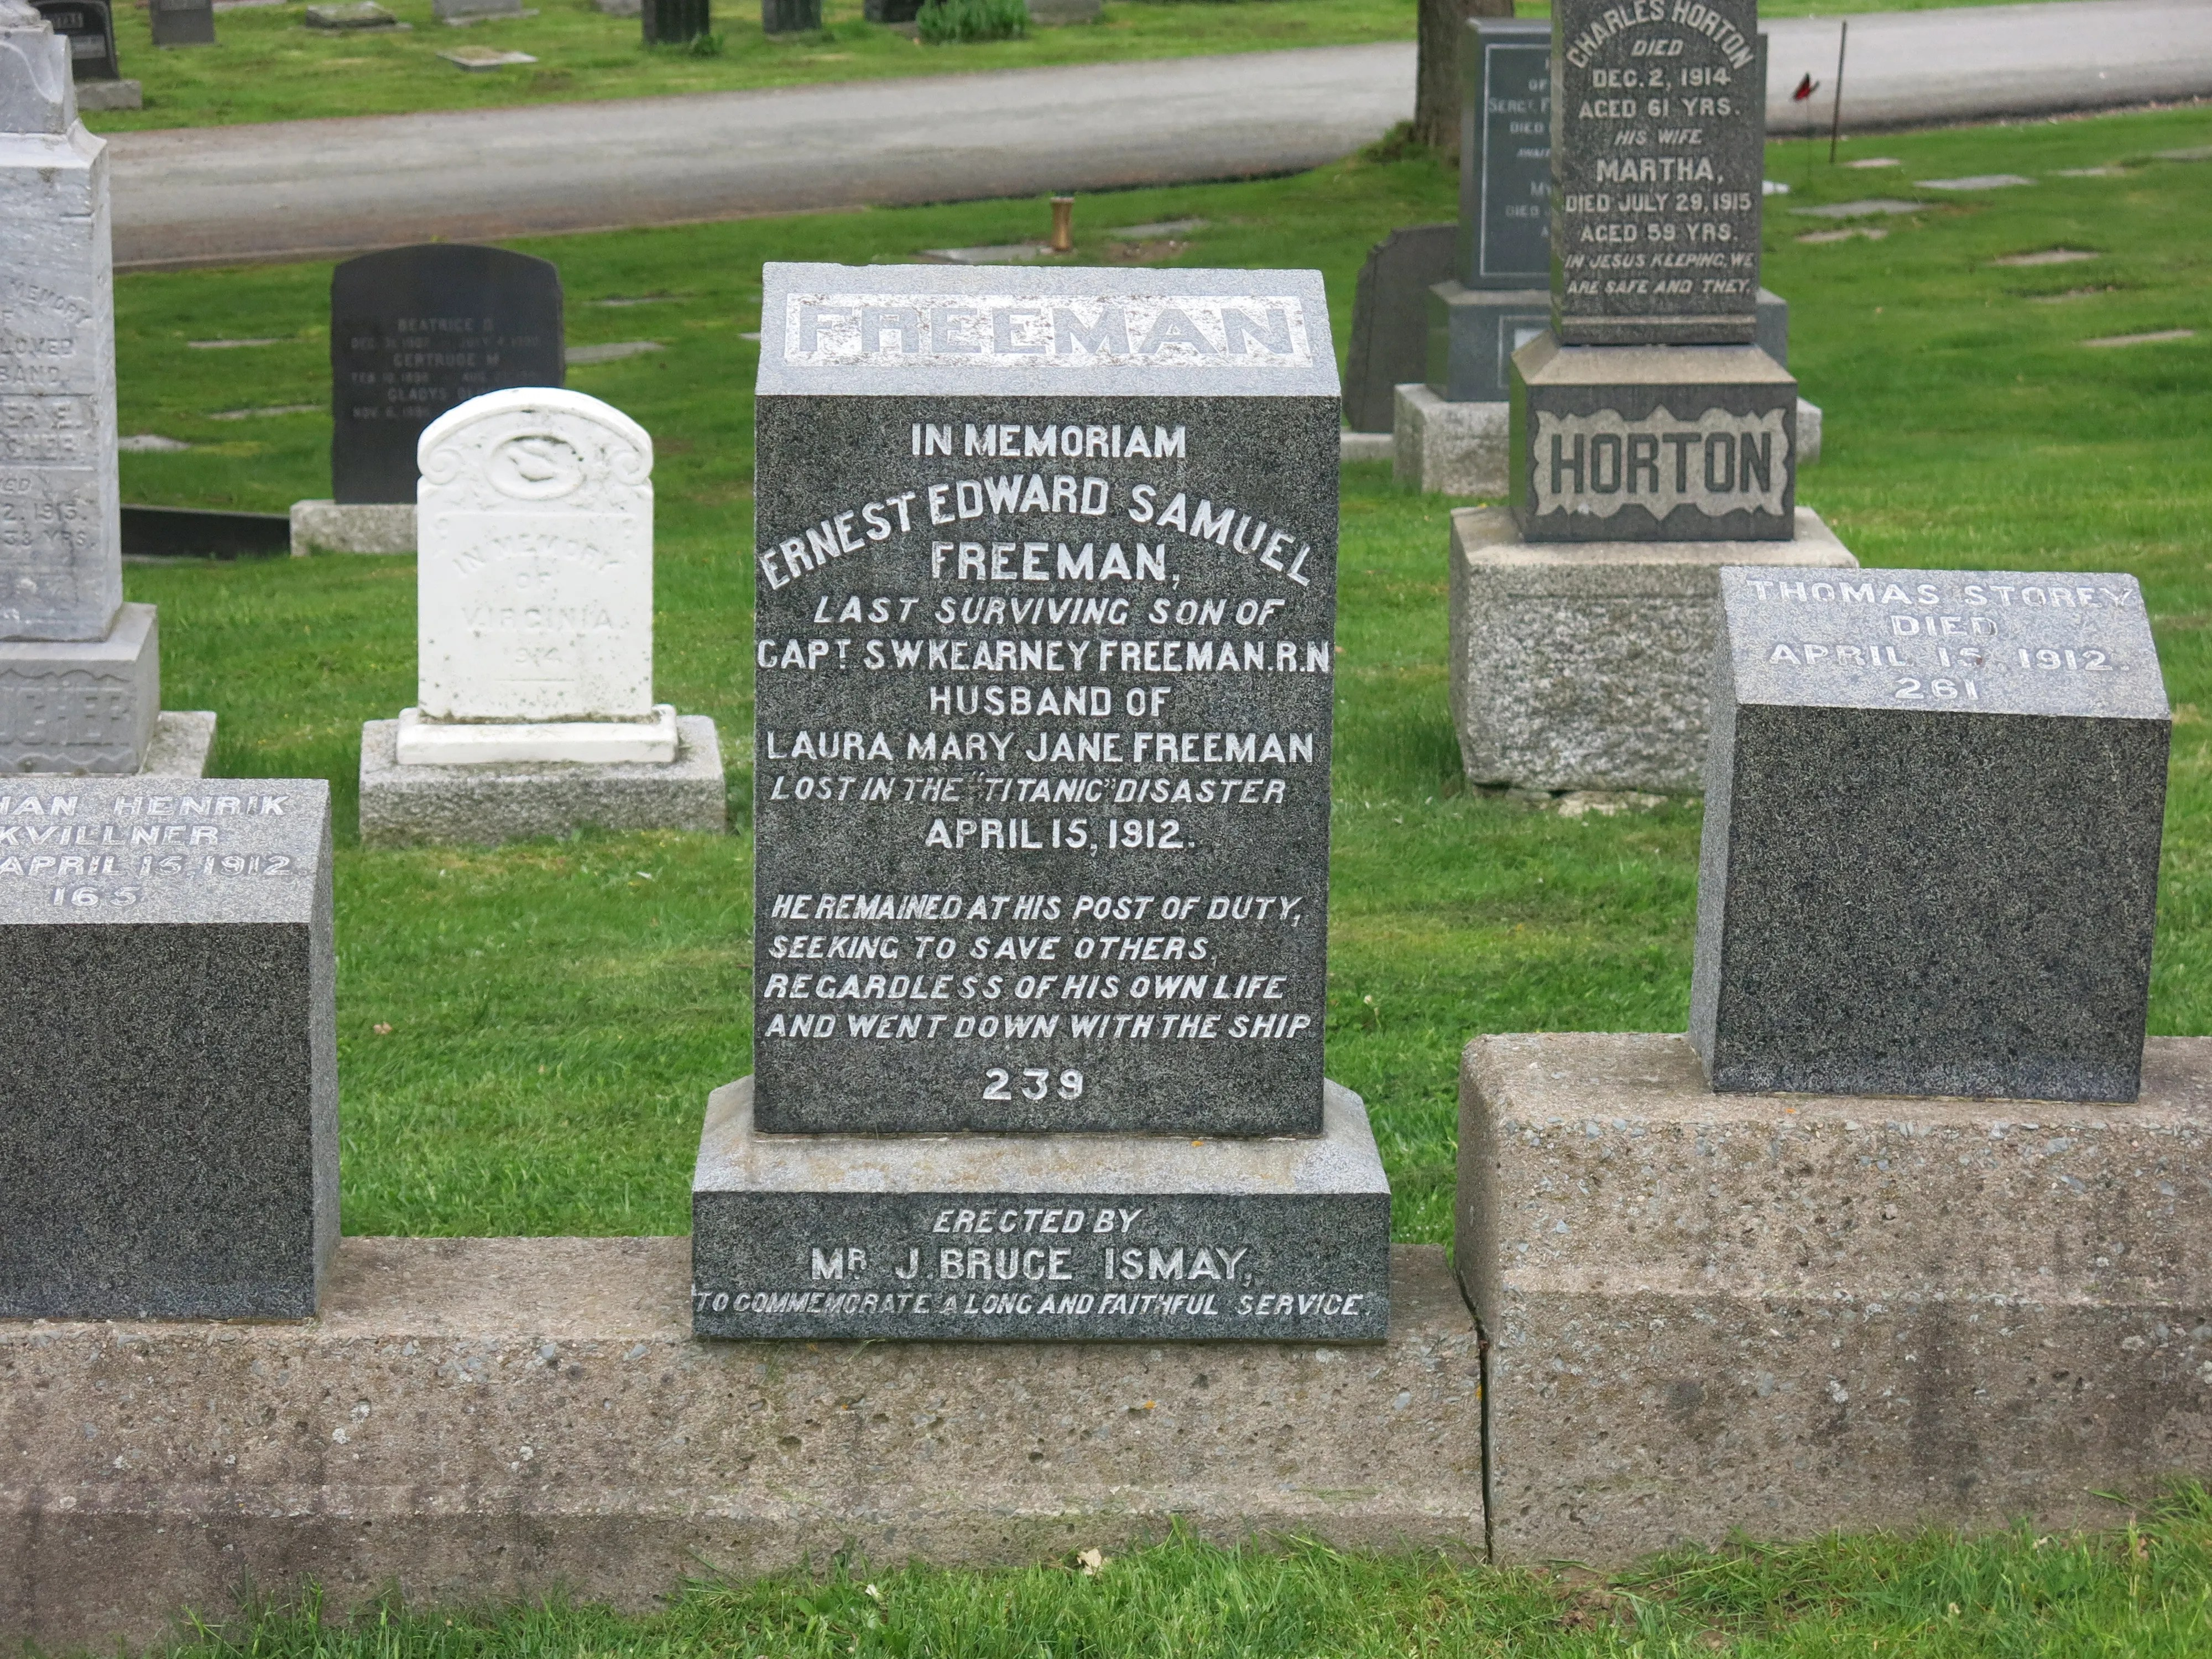 Fairview Cemetery in Halifax contains the remains of many victims of the Titanic disaster. JIM BYERS PHOTO